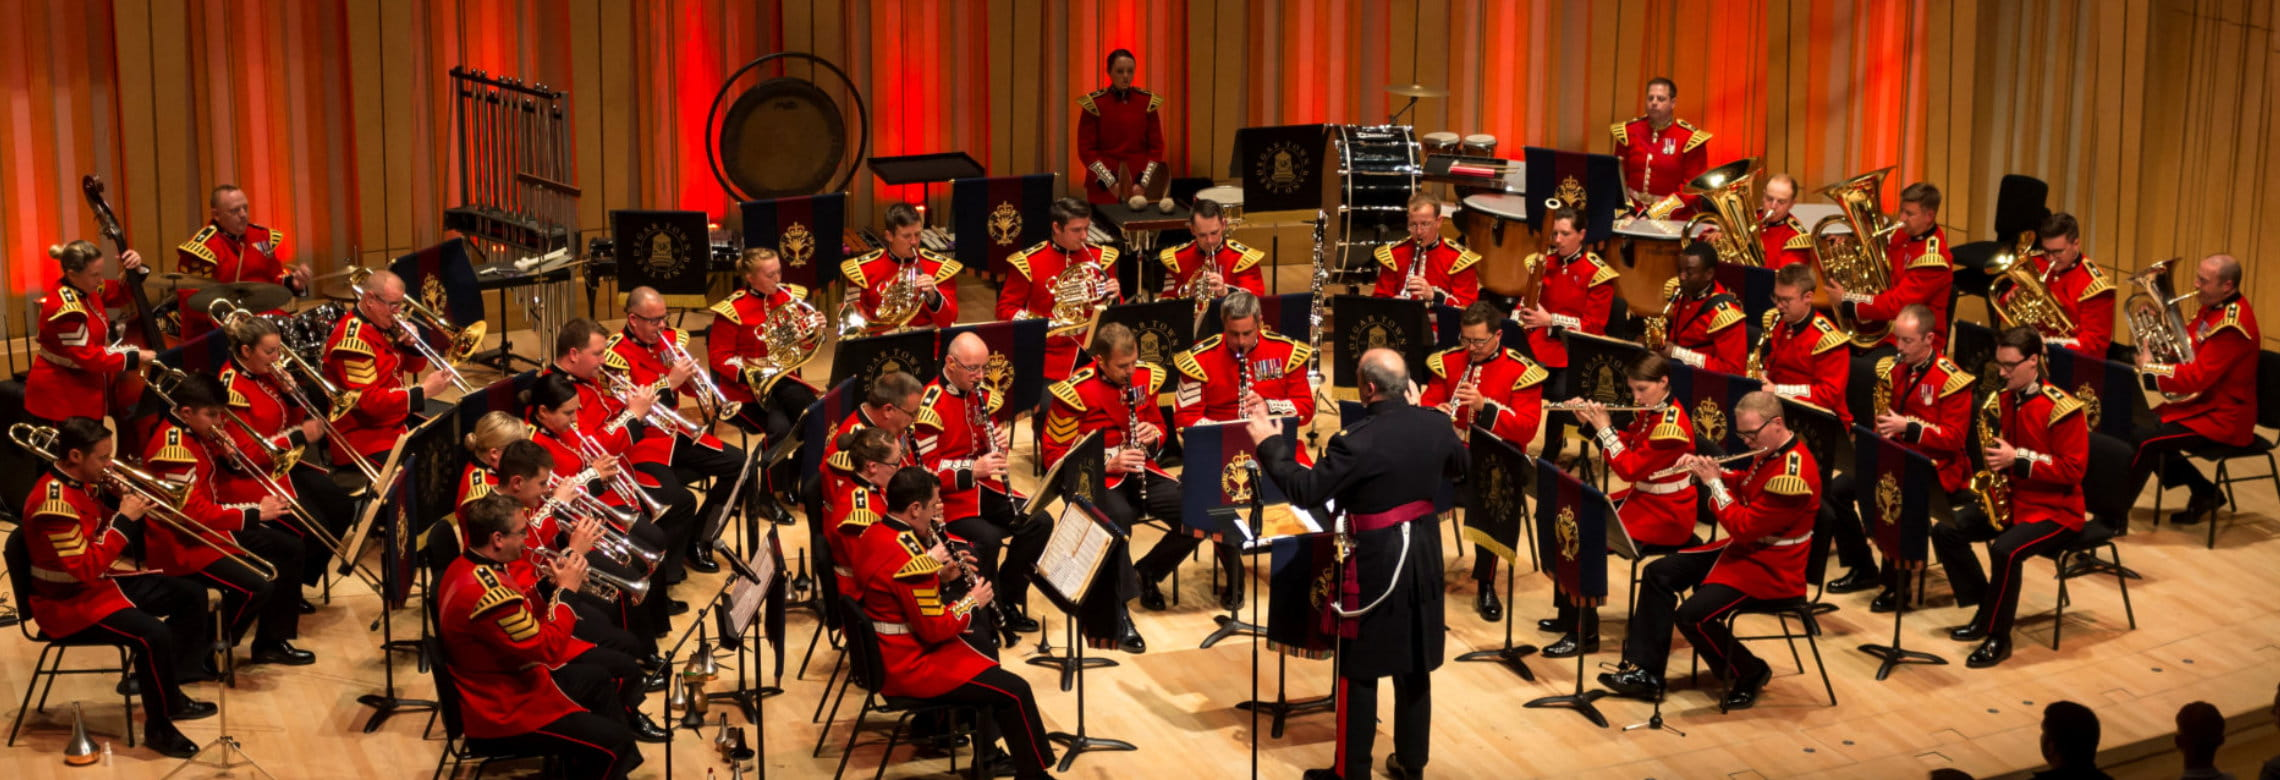 Army Band in Concert